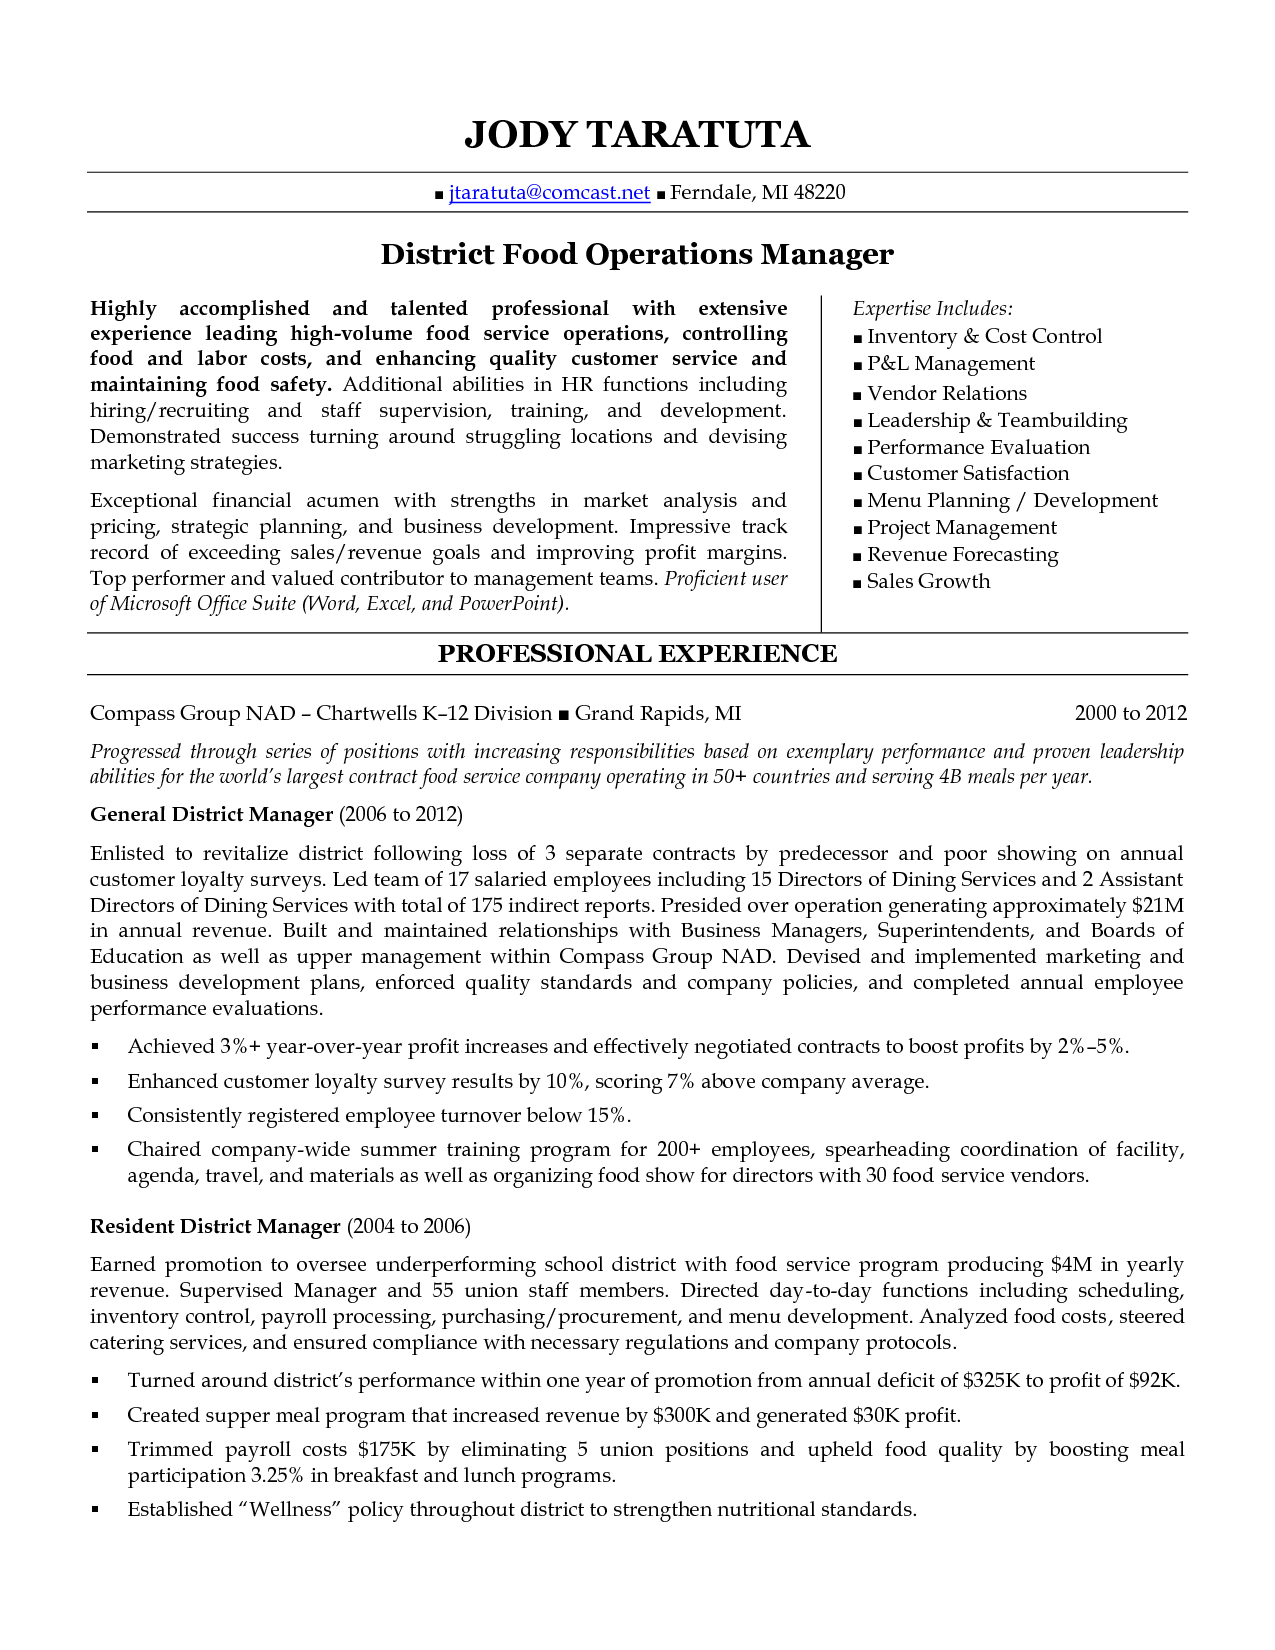 district manager resume objective examples